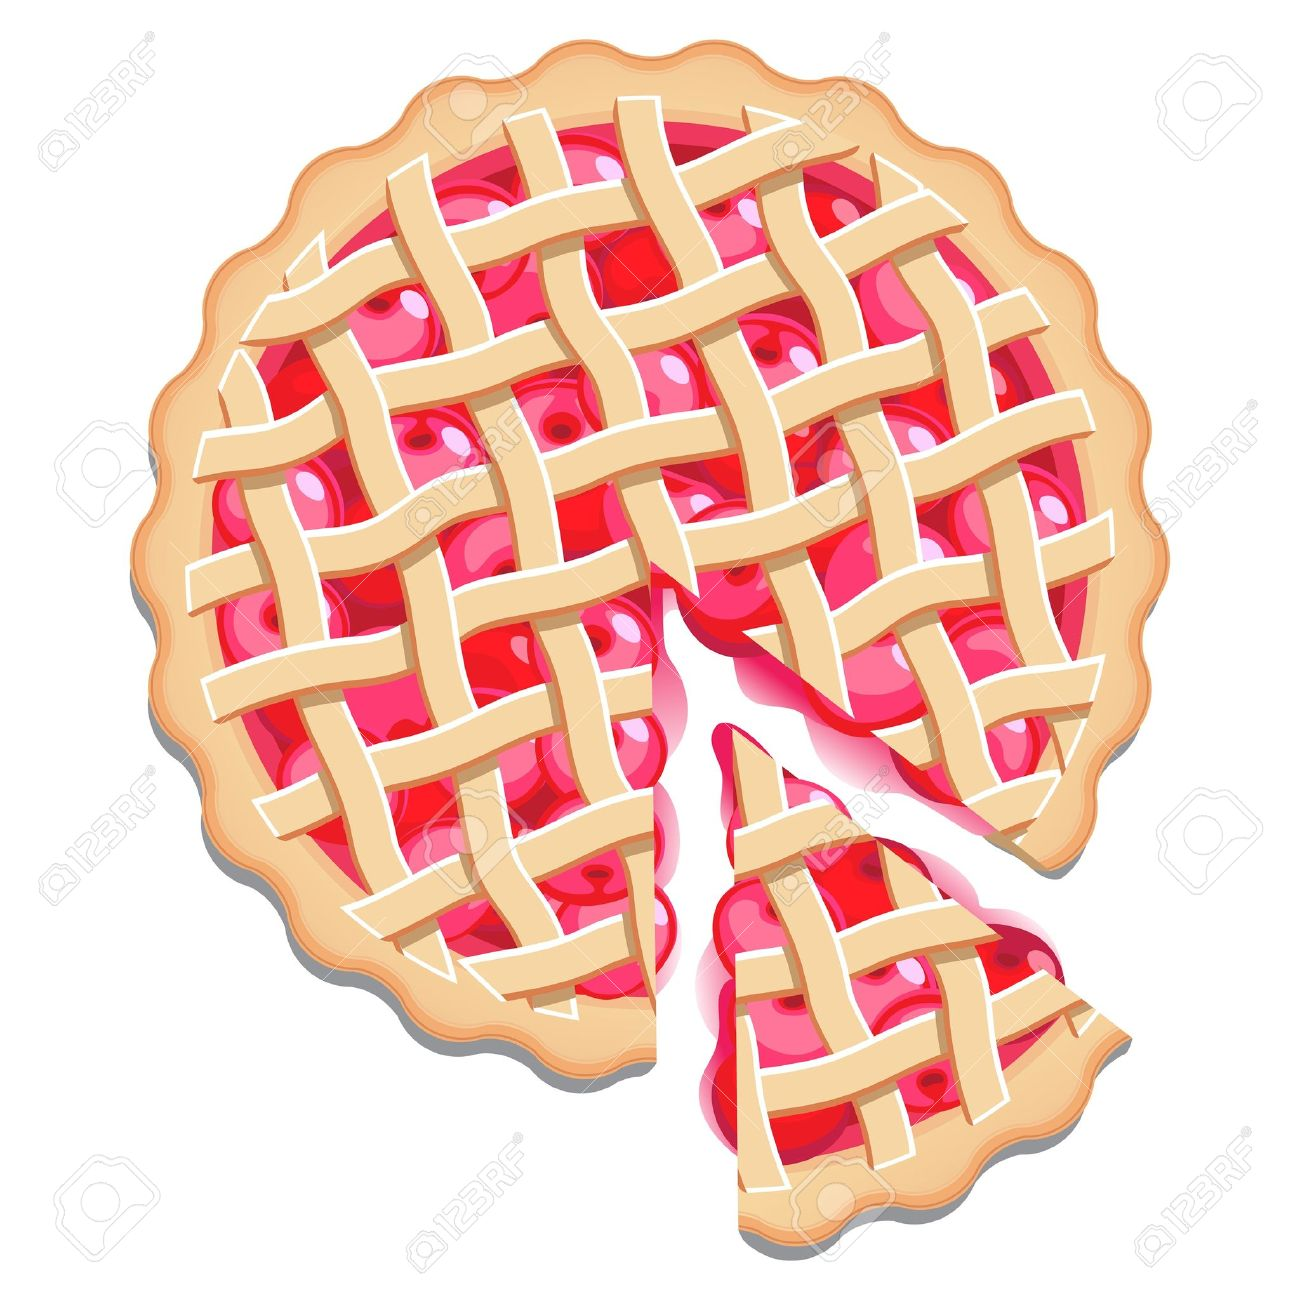 hight resolution of cherry pie with a lattice pastry dough top and a cut slice isolated stock vector